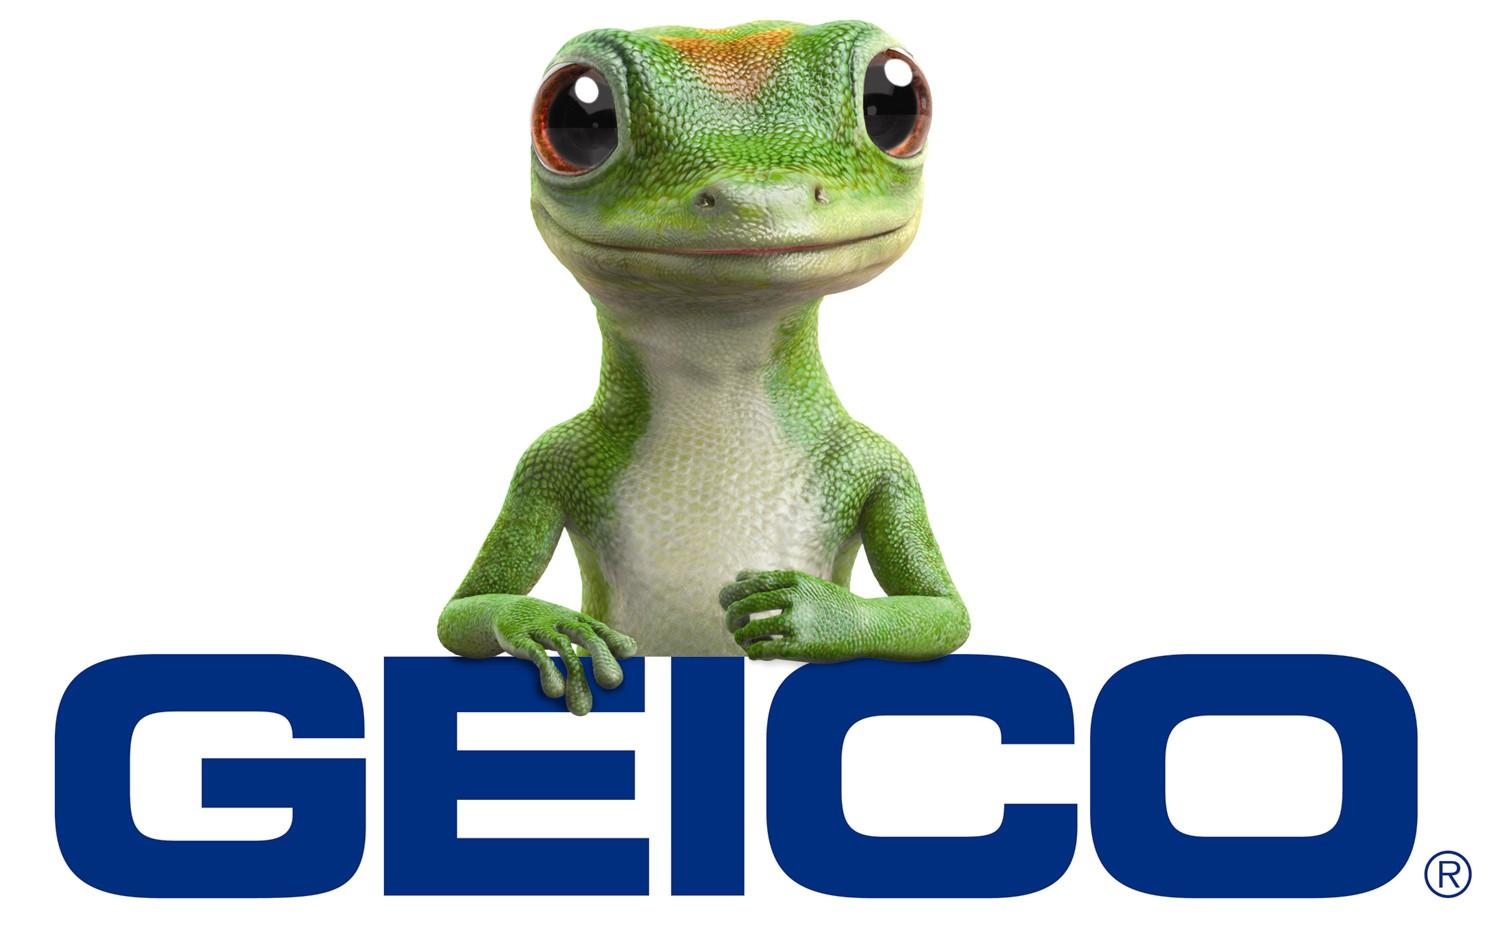 Cheap car insurance quotes from Geico